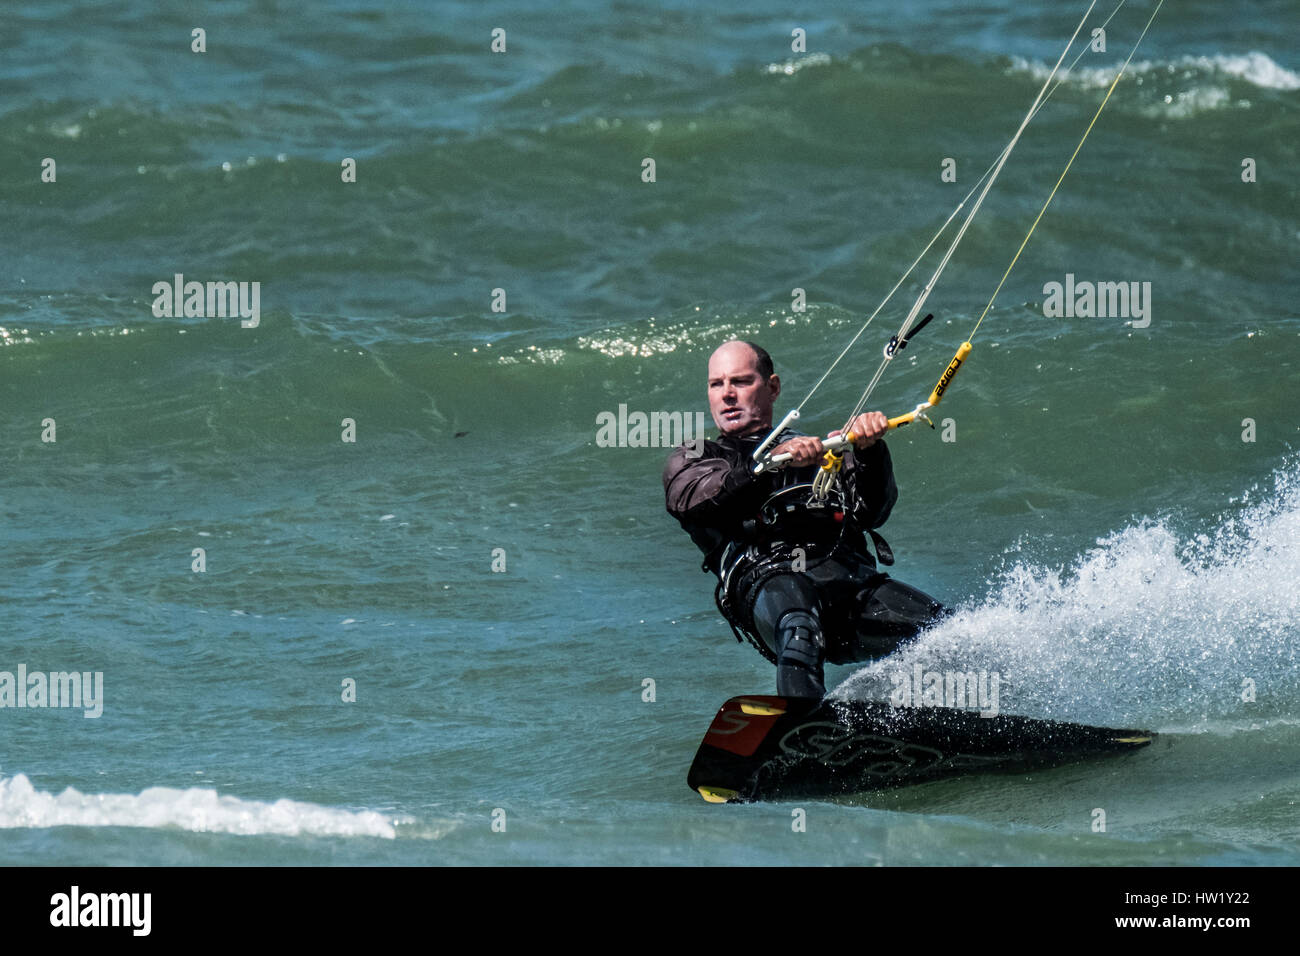 A kitesurfer in Klitmoller which is a popular windsurfing destination in Northern Denmark. Klitmoller is also known - Stock Image